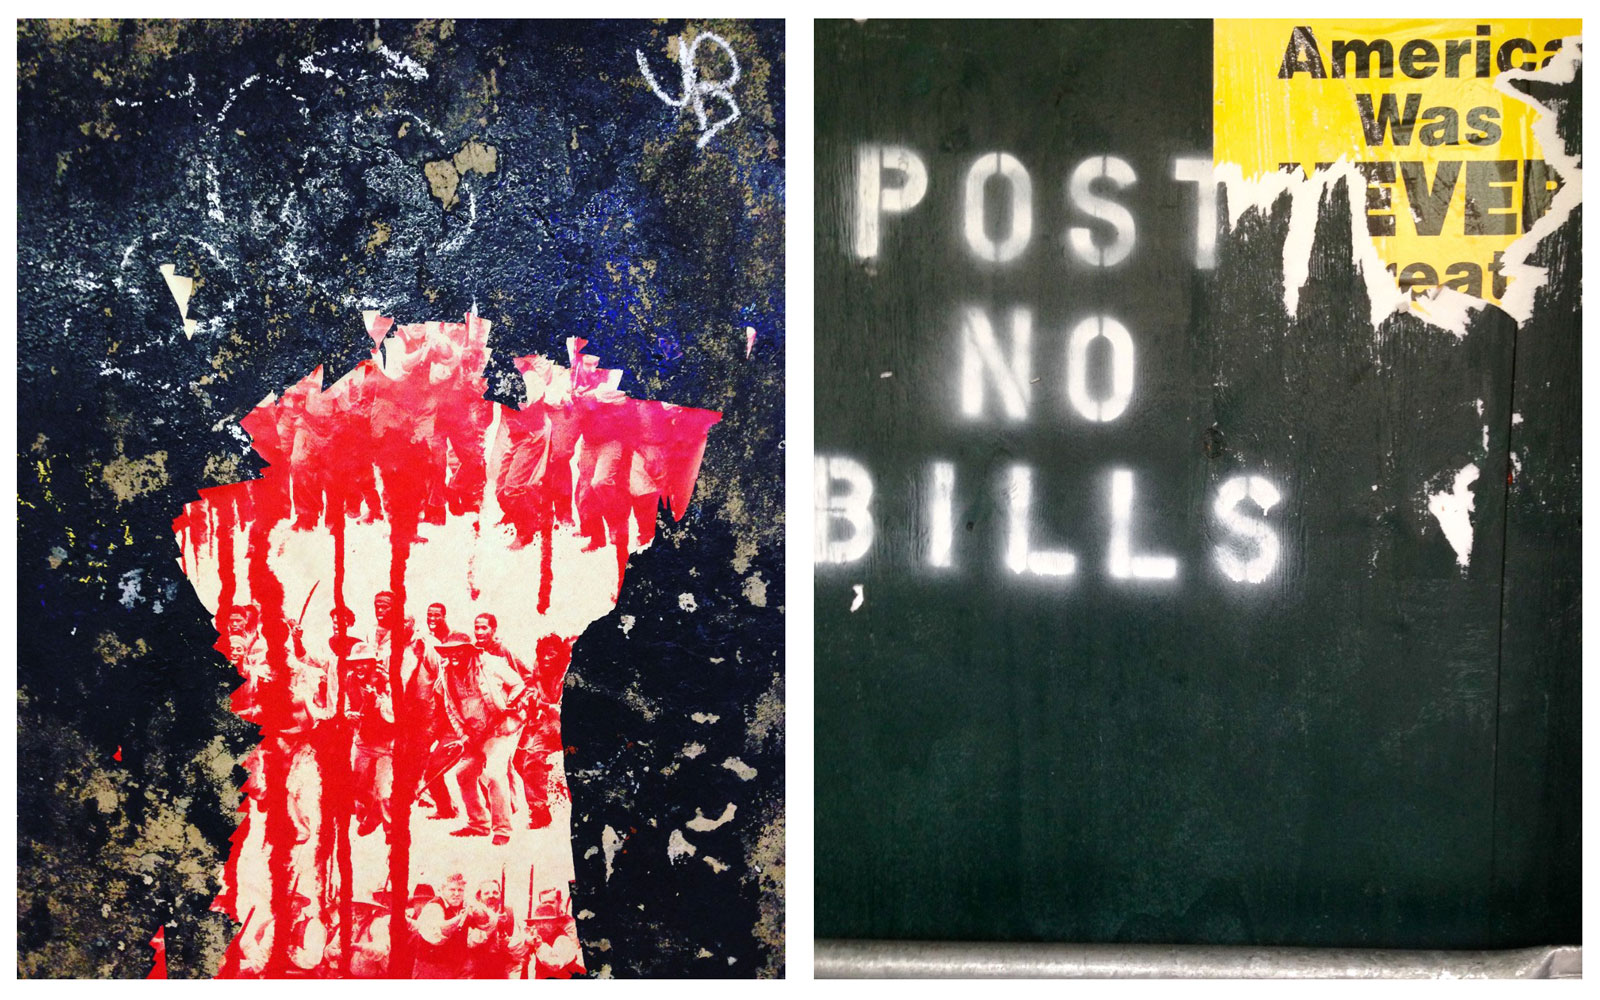 Two peeling posters, the left showing a crowd in red ink, the right a peeling sign that said